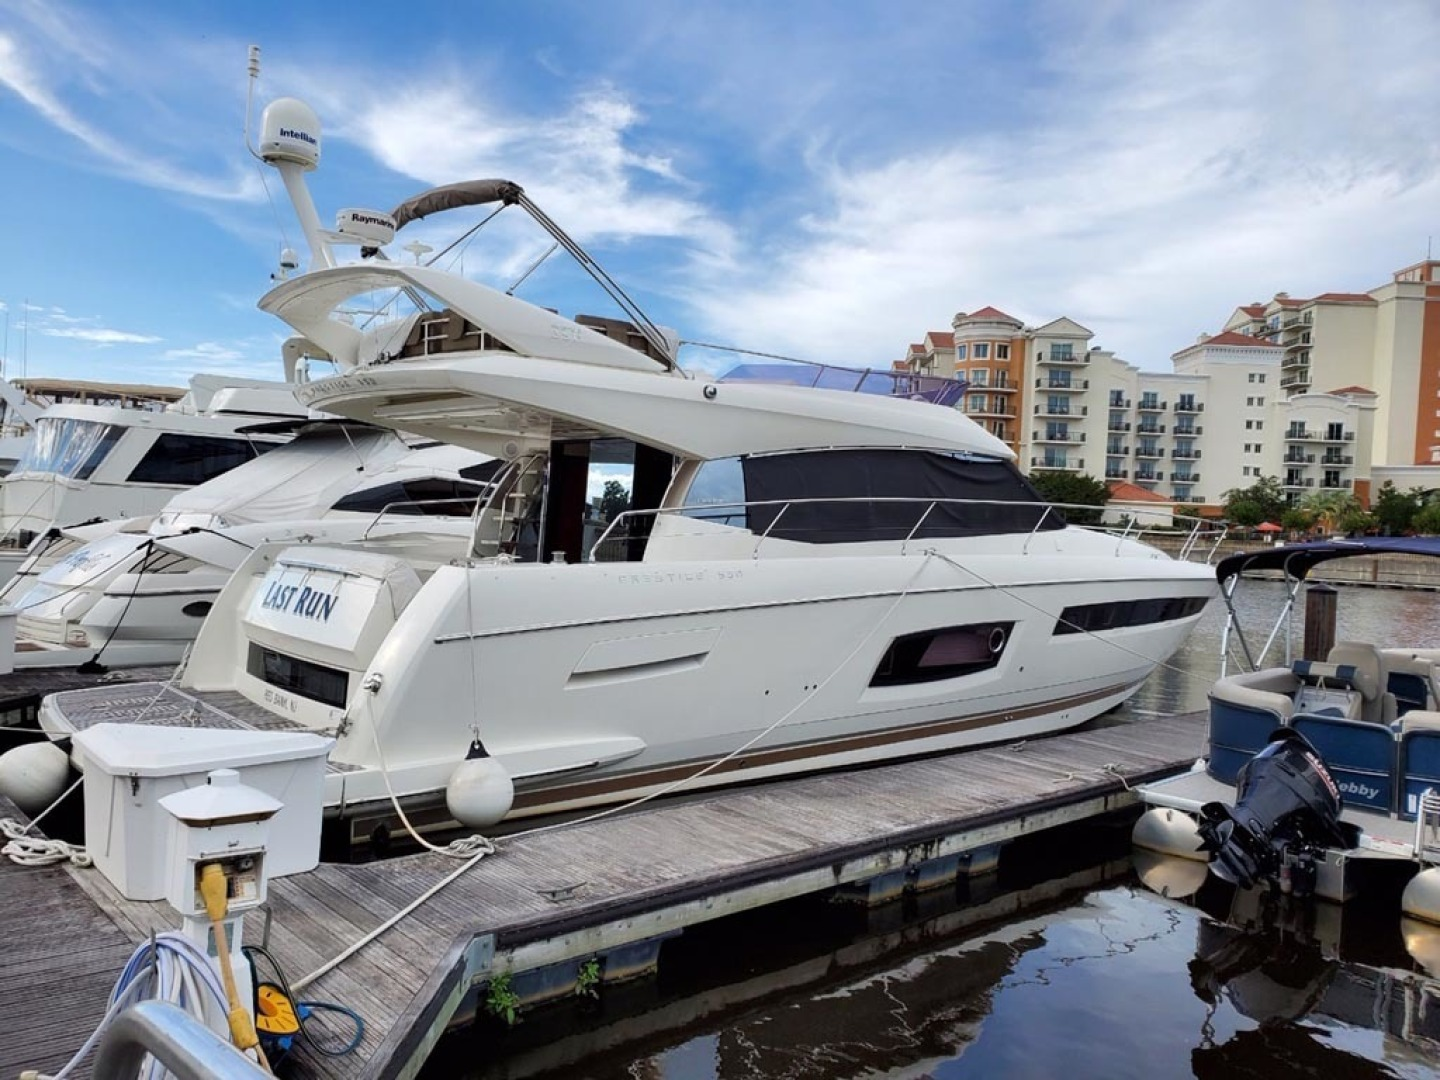 Prestige-550 2014-Last Run Mount Pleasant-South Carolina-United States-Starboard Aft View-1417403 | Thumbnail